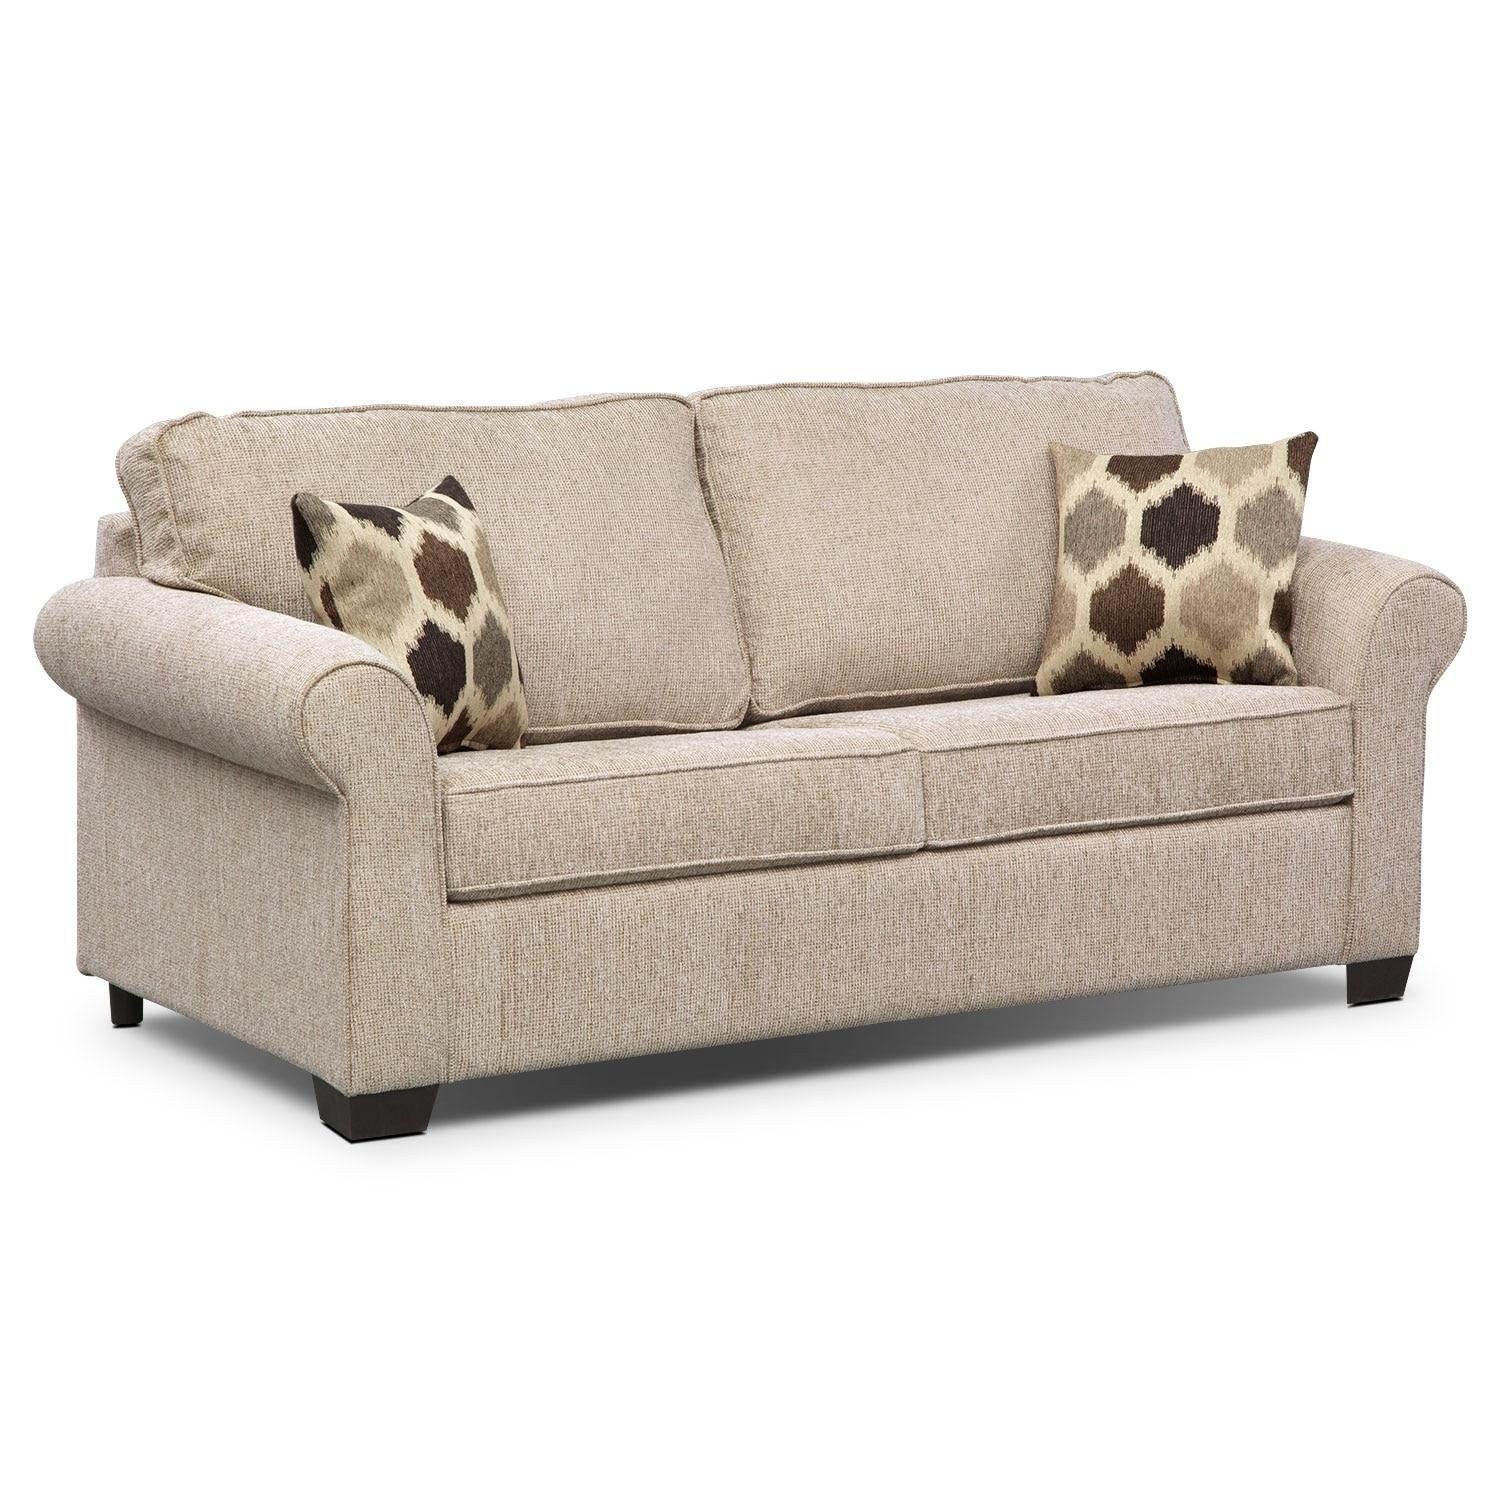 Sofas Center : Queen Sleeper Sofa Sale Navasota Reviews Kenzey Pertaining To Queen Sleeper Sofa Sheets (View 14 of 20)